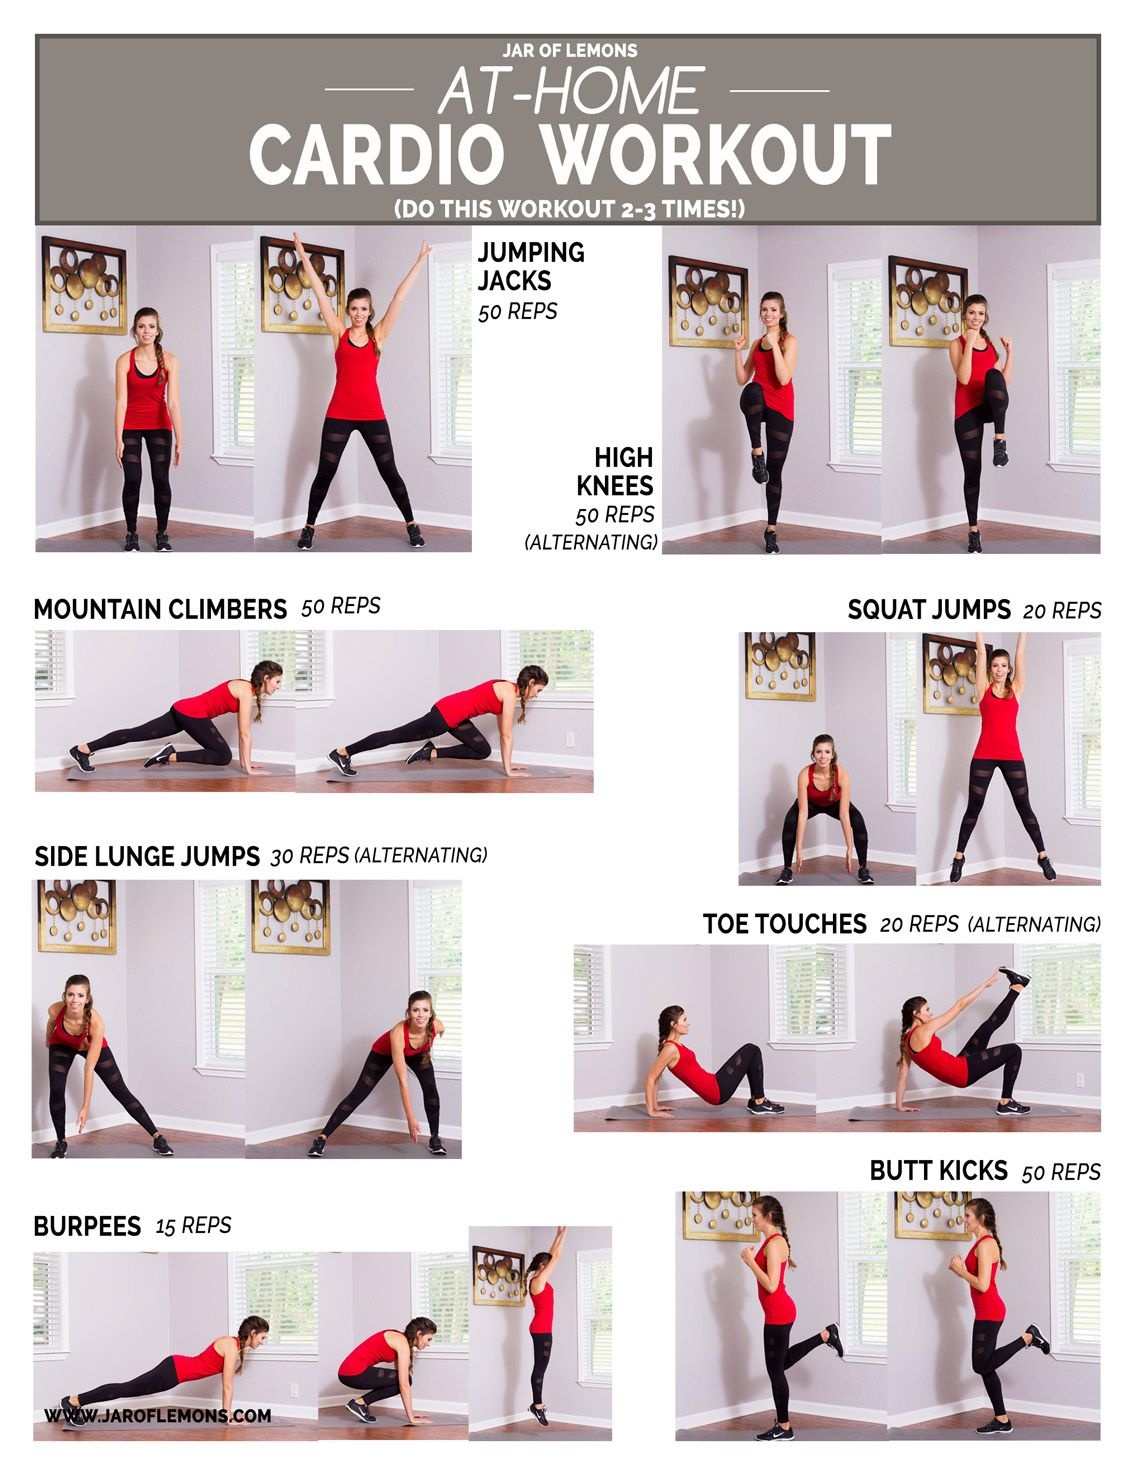 At Home Cardio Workout Head Over To Jar Of Lemons For The Full Printable